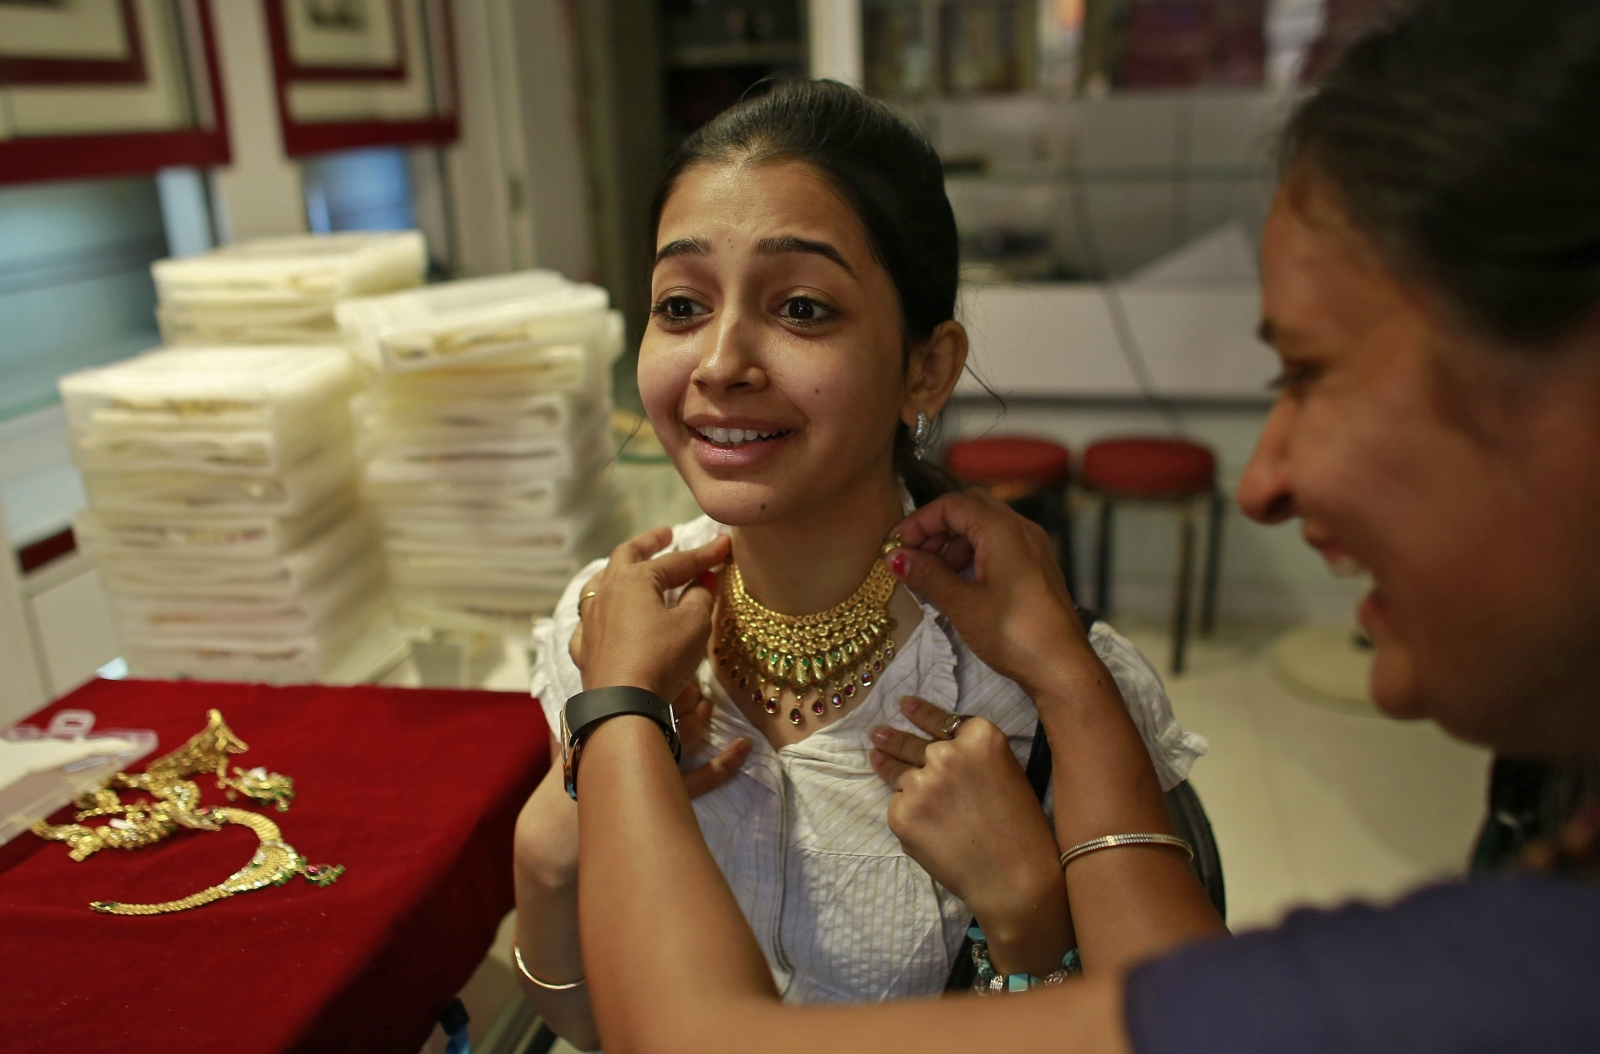 India: Gold importers offer discounts as jewellers curb buys on likely duty cut